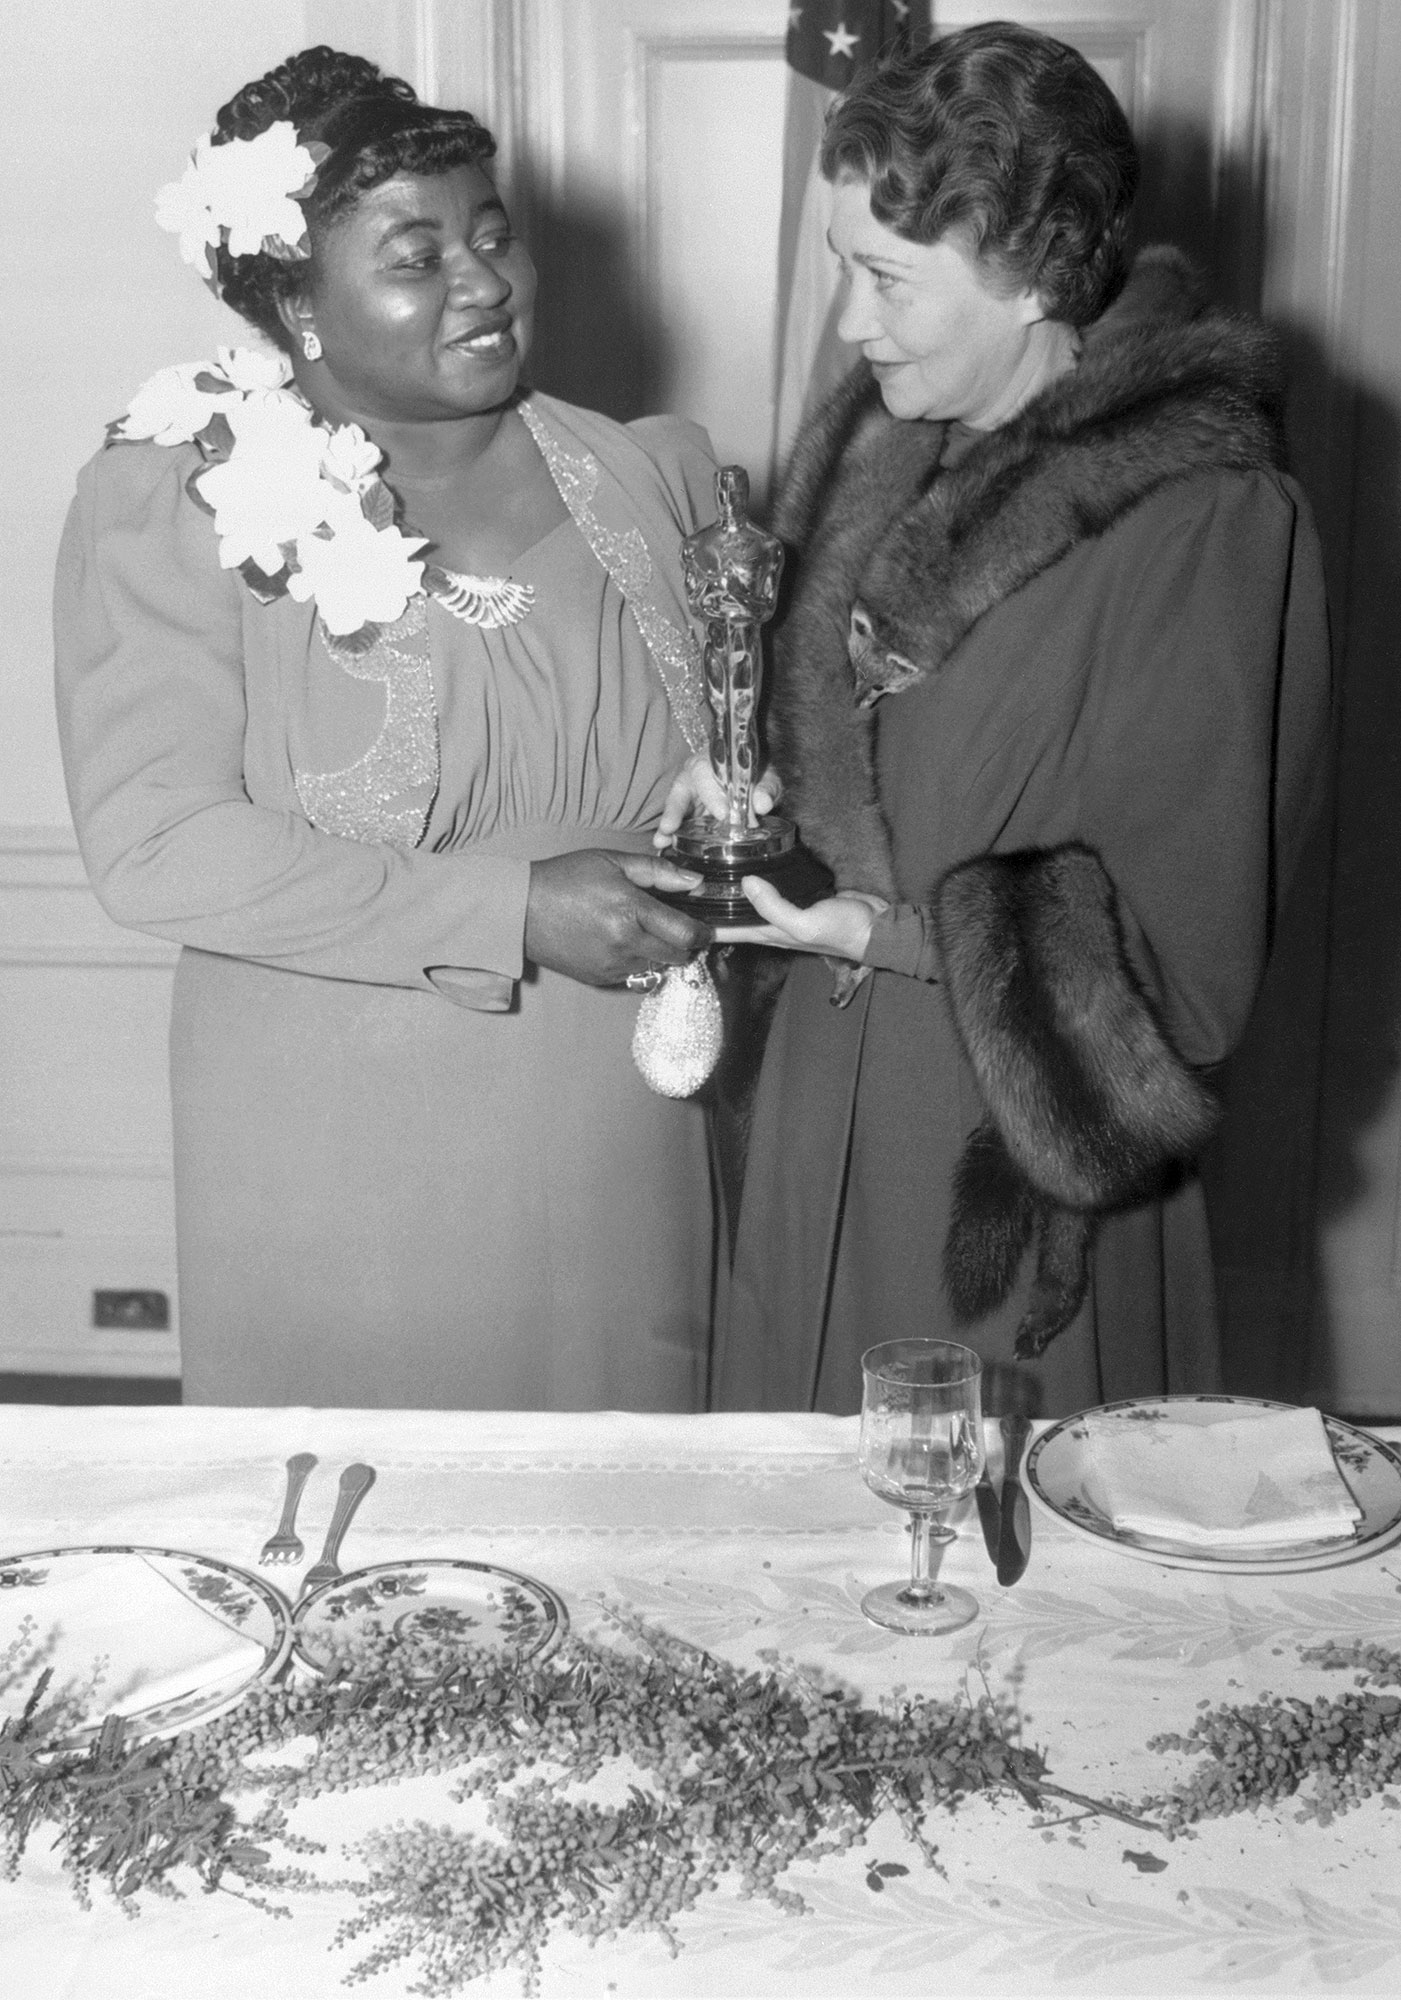 1940: HATTIE MCDANIEL MAKES HISTORY